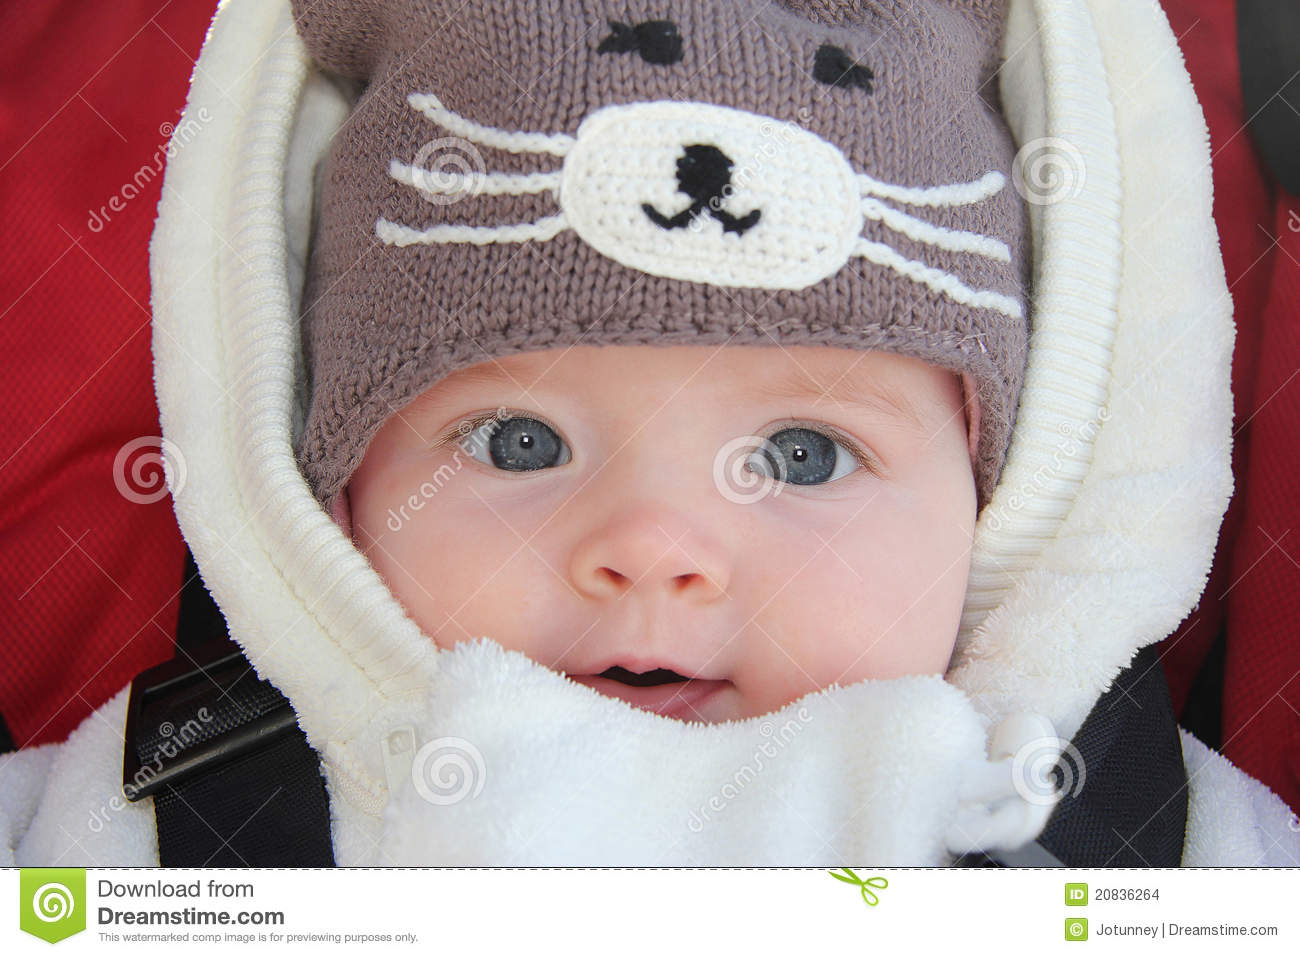 b813a4bd6 Cute Baby Girl Wearing Fun Winter Hat Stock Photo - Image of baby ...